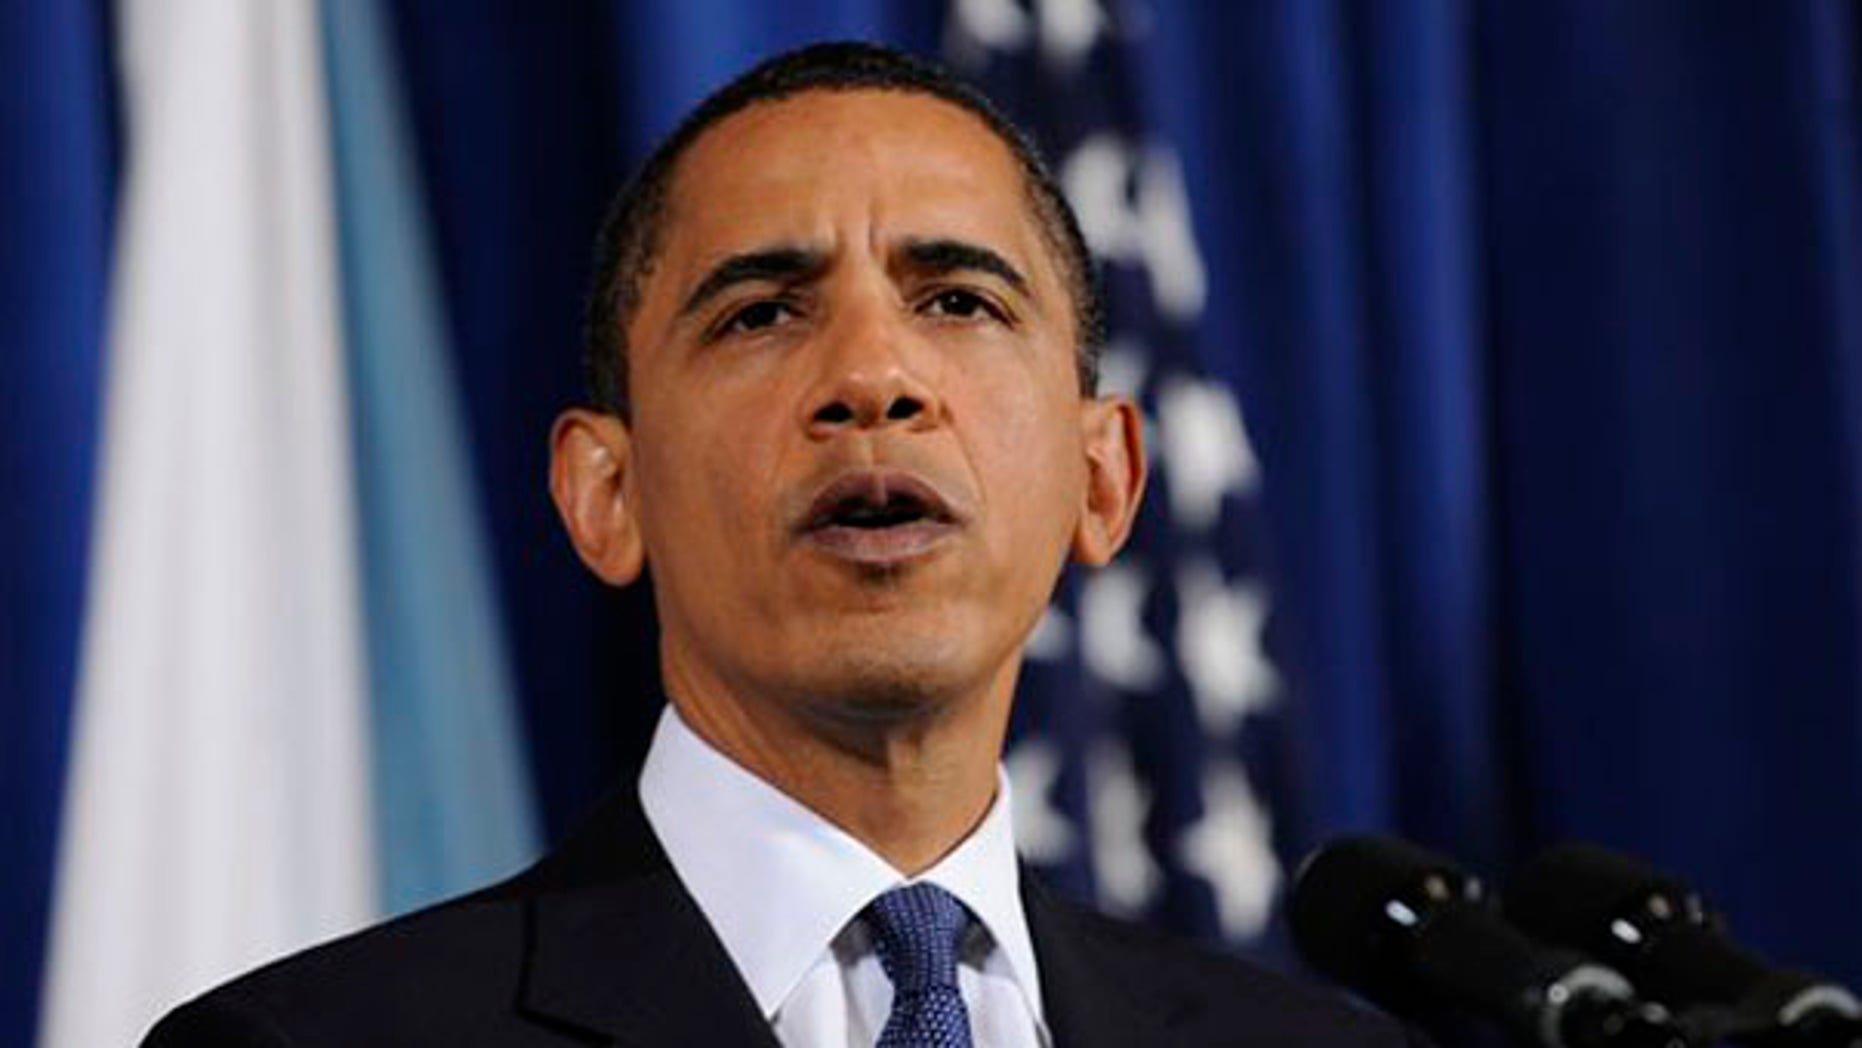 President Obama speaks about the shooting at Ft. Hood during an event in Washington Nov. 5. (AP Photo)